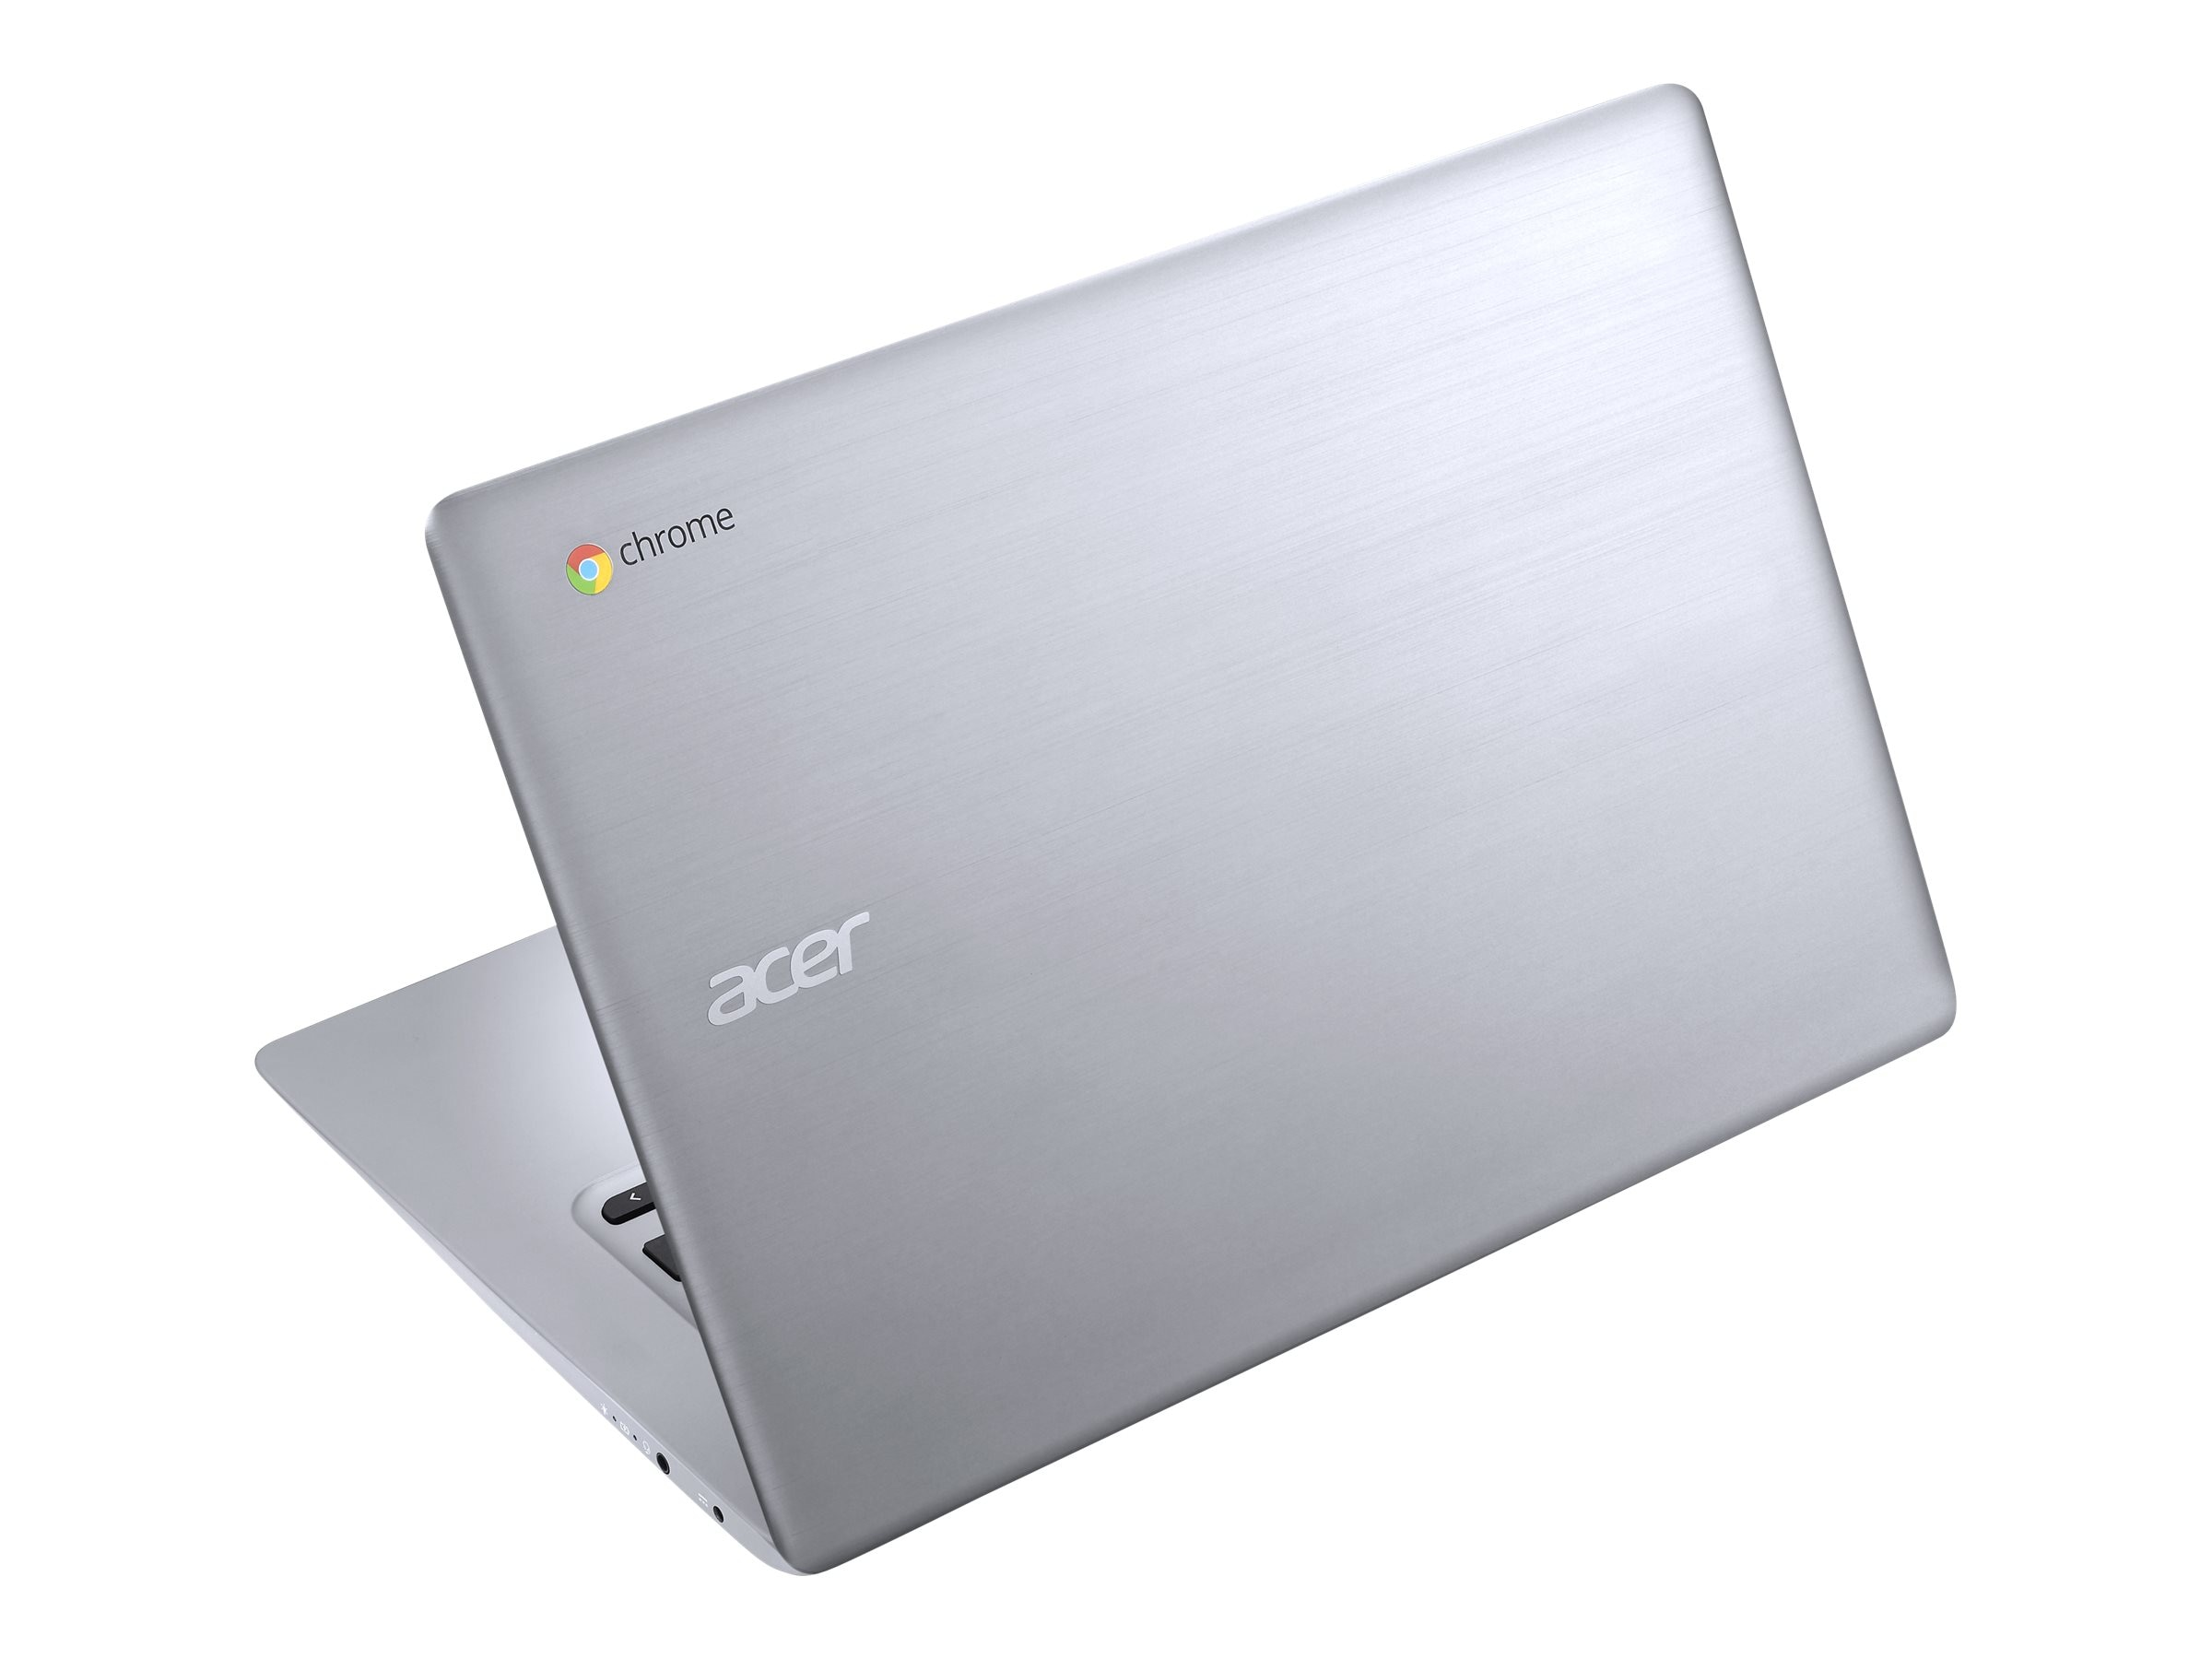 Acer Chromebook 14 CB3-431-C0D0 1.6GHz Celeron 14in display, NX.GC2AA.010